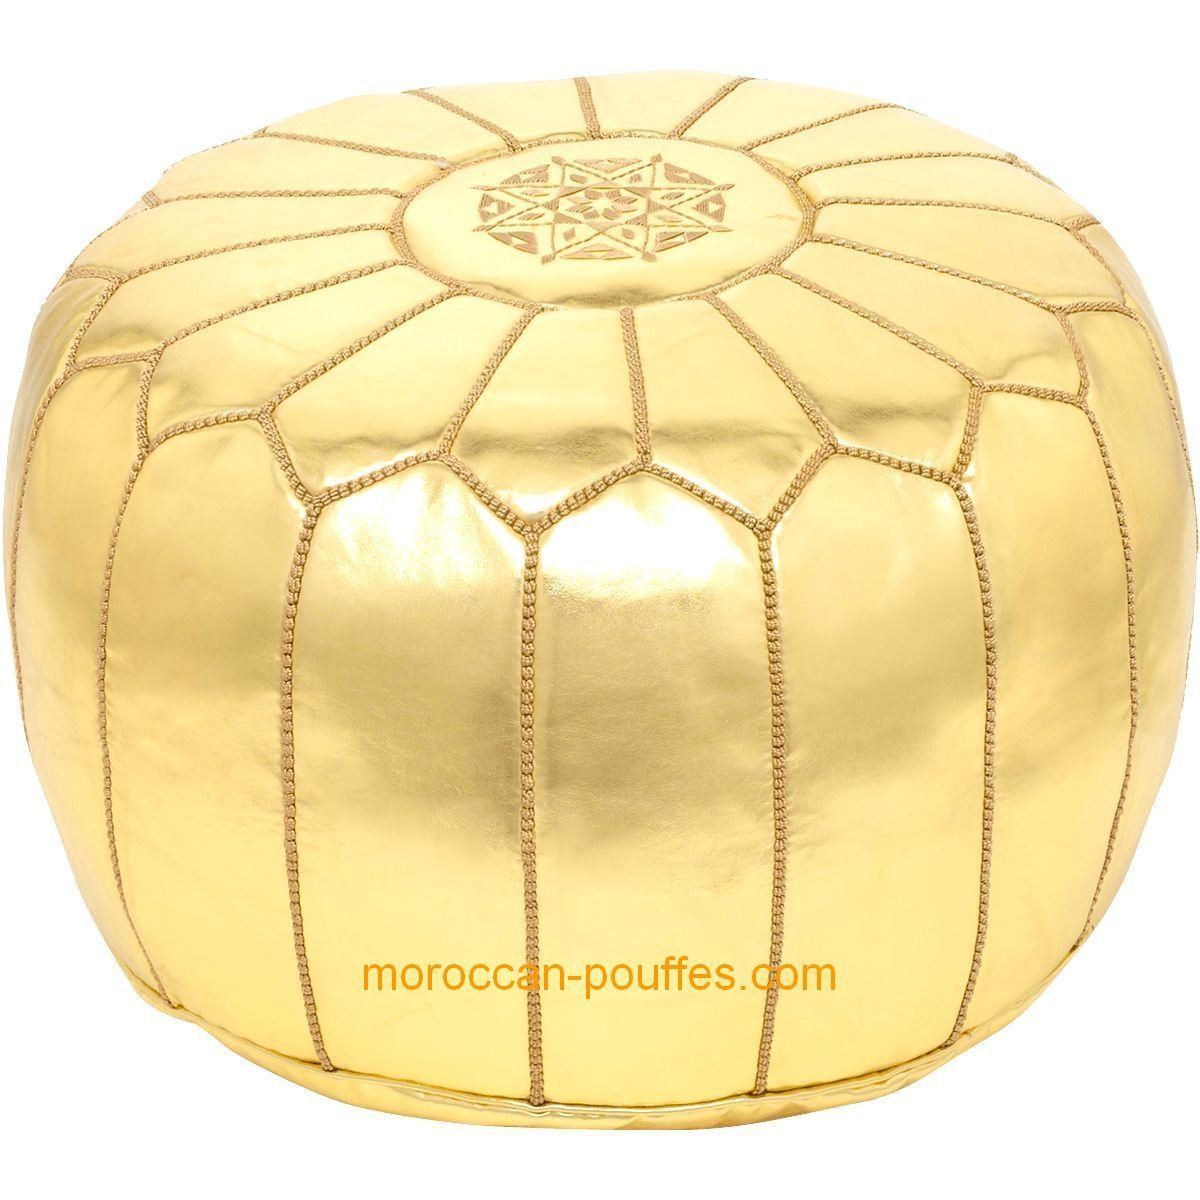 amazoncom moroccan poufs leather luxury ottomans footstools gold  - amazoncom moroccan poufs leather luxury ottomans footstools goldunstuffed kitchen  dining